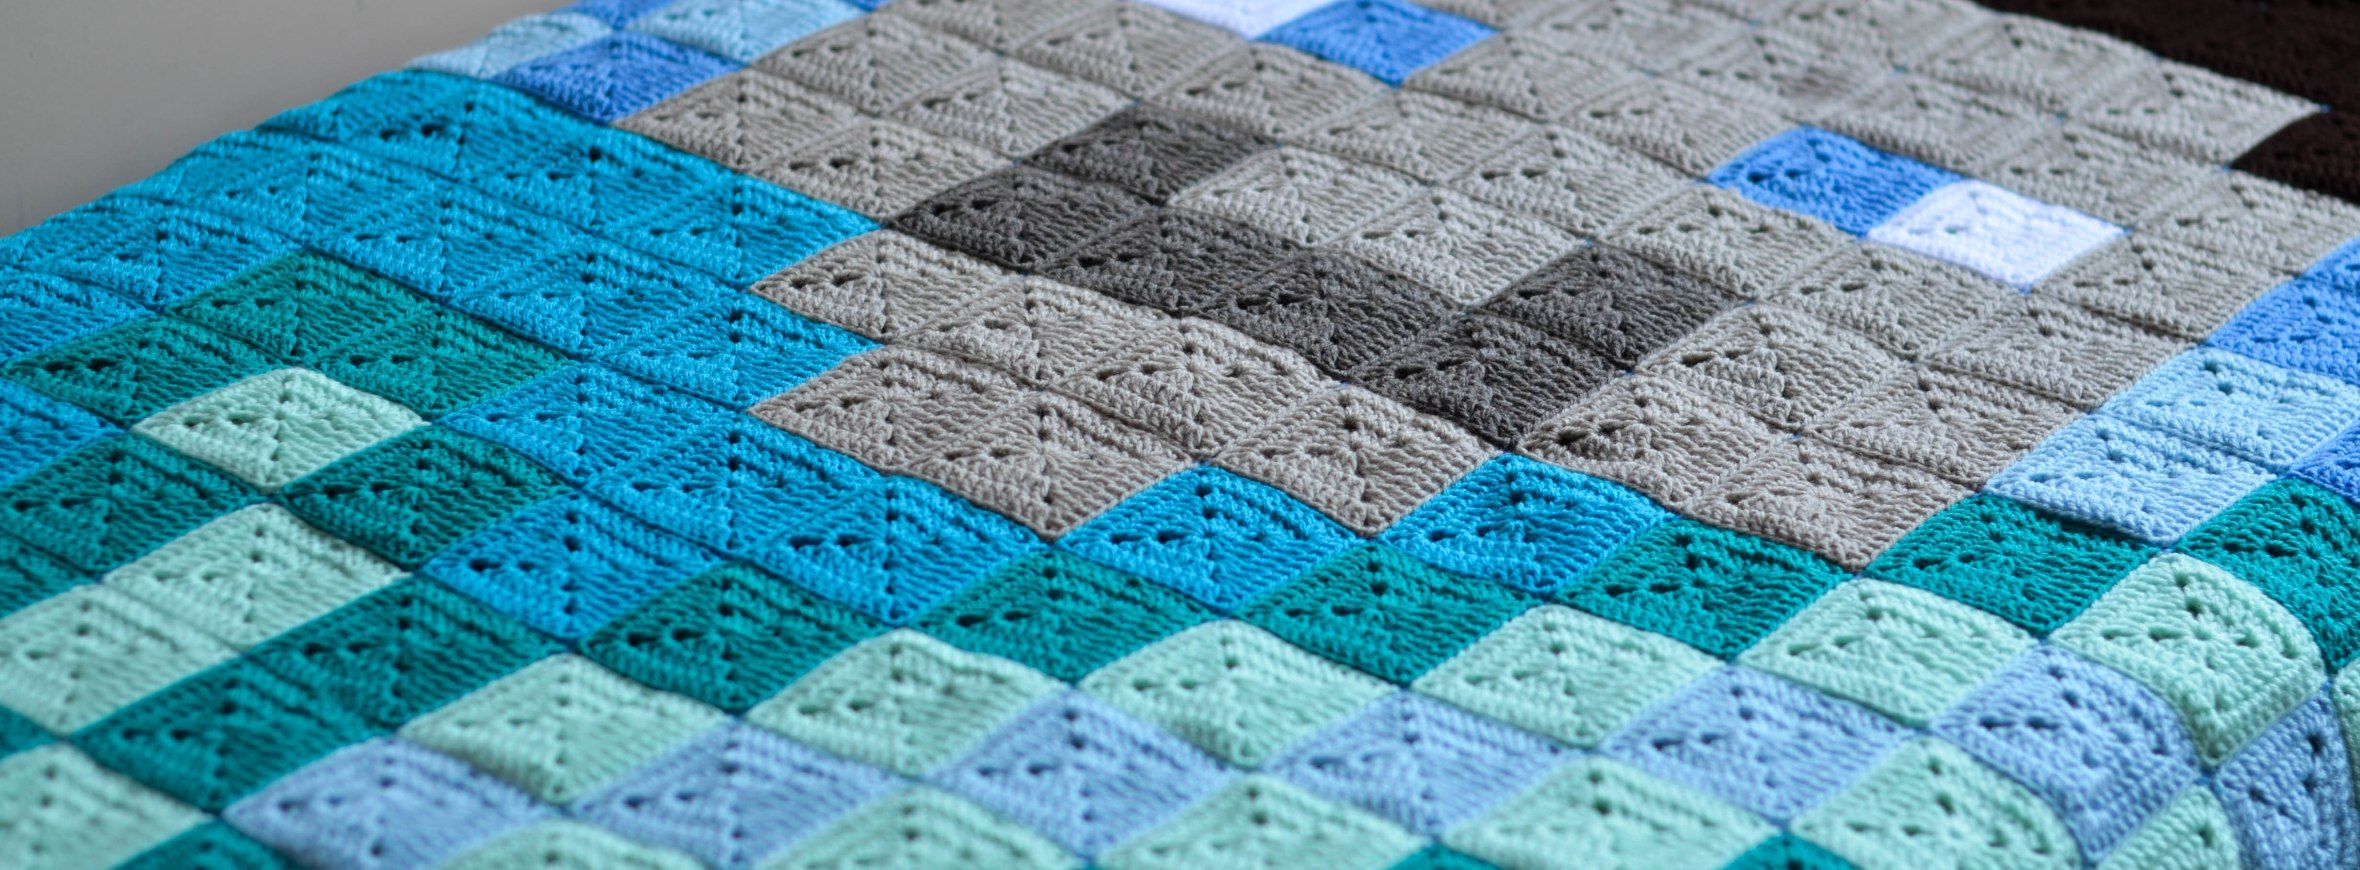 Crochet Minecraft Blanket – The LOOPY STITCH | CROCHETING - AFGHANS ...